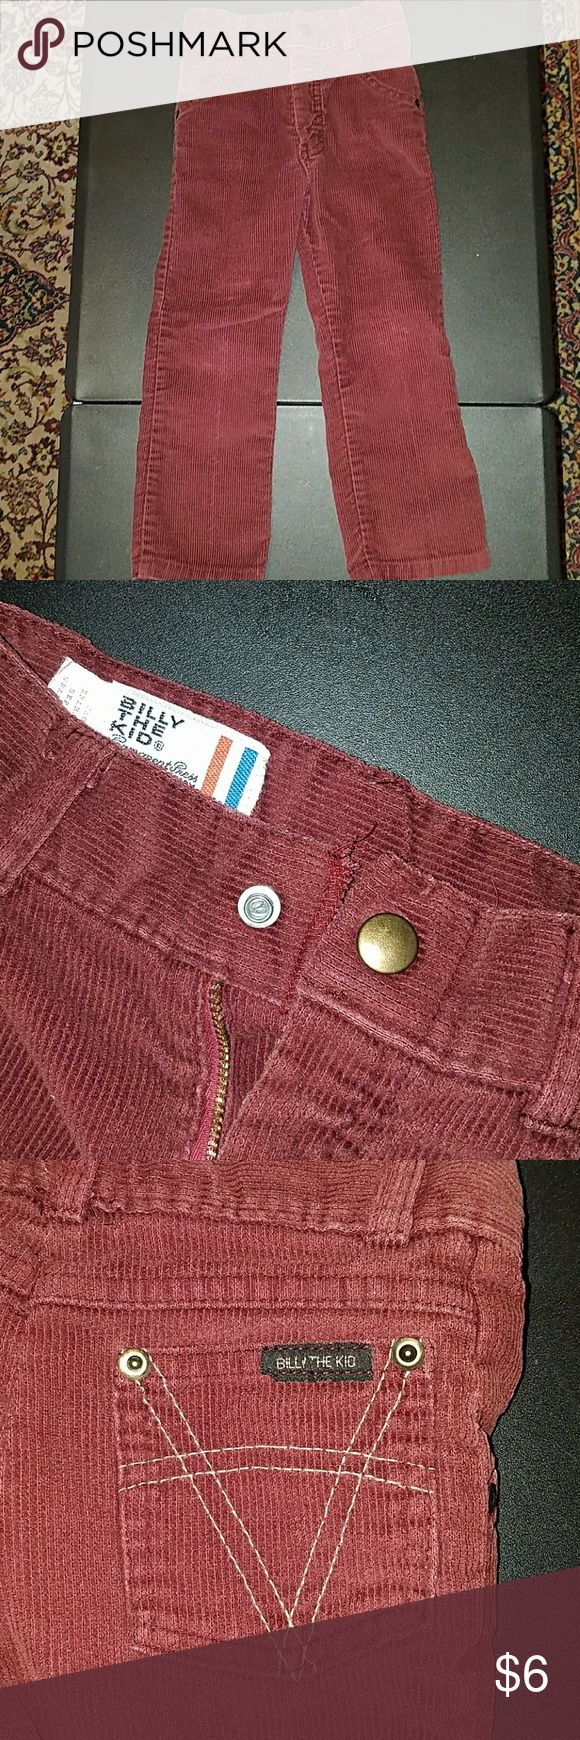 Vintage Kids Burgundy Corduroy Pants Vintage Billy the Kid size 5 Slim Corduroy pants. Burgundy. Snap closure with zipper. Usable front and back pockets. Great condition. Billy The Kid Bottoms Casual